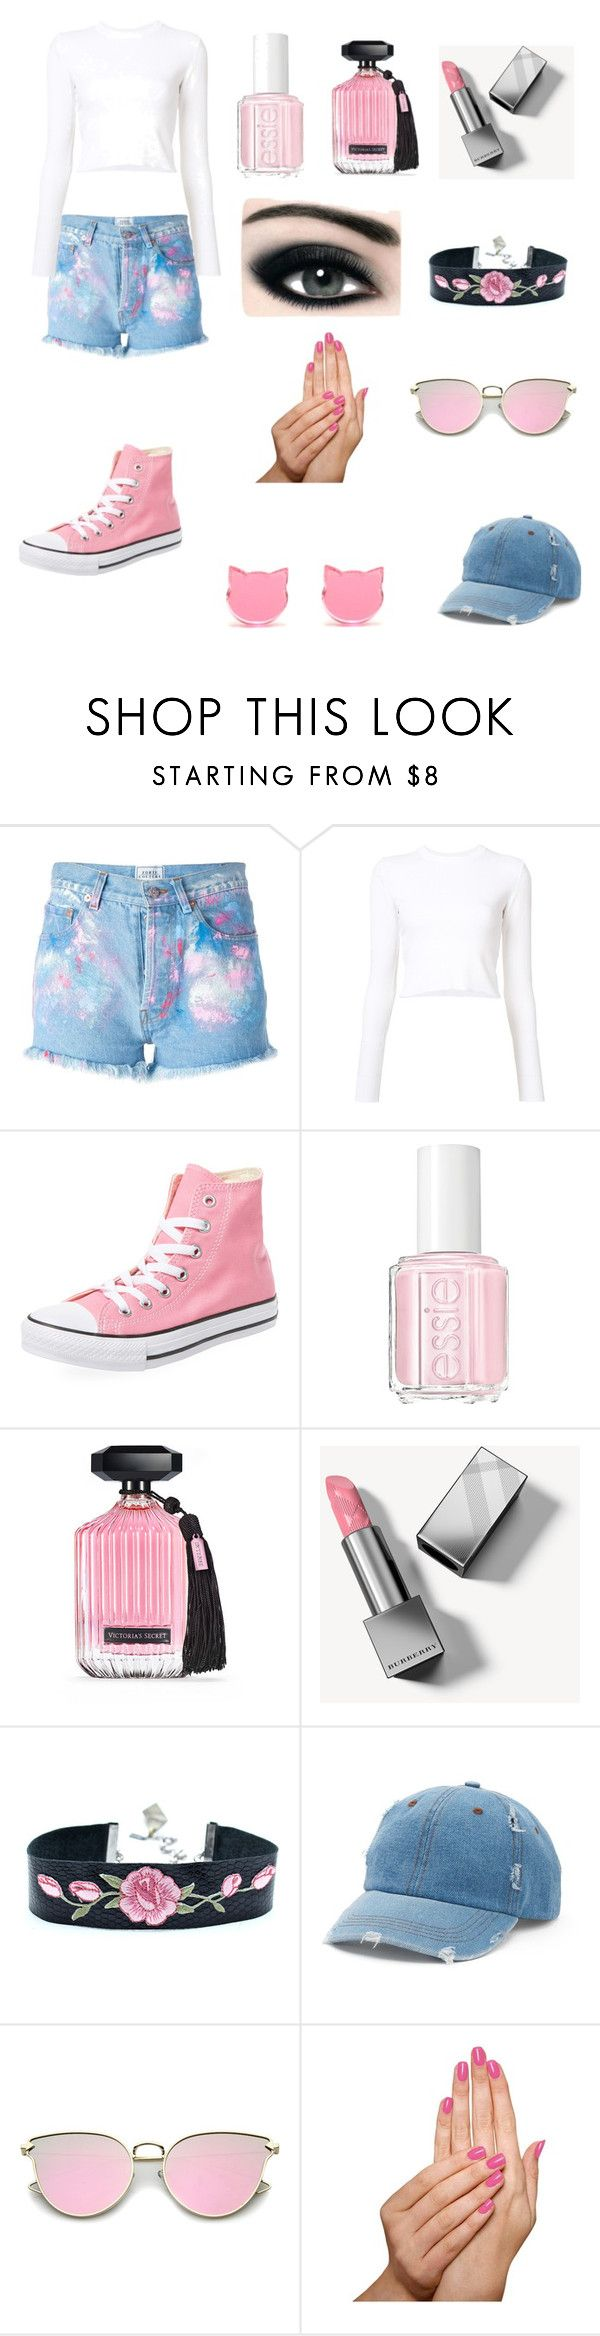 """Untitled #14"" by kh03229 ❤ liked on Polyvore featuring Forte Couture, Proenza Schouler, Converse, Essie, Victoria's Secret, Burberry, Max Factor, Mudd and Piggy Paint"